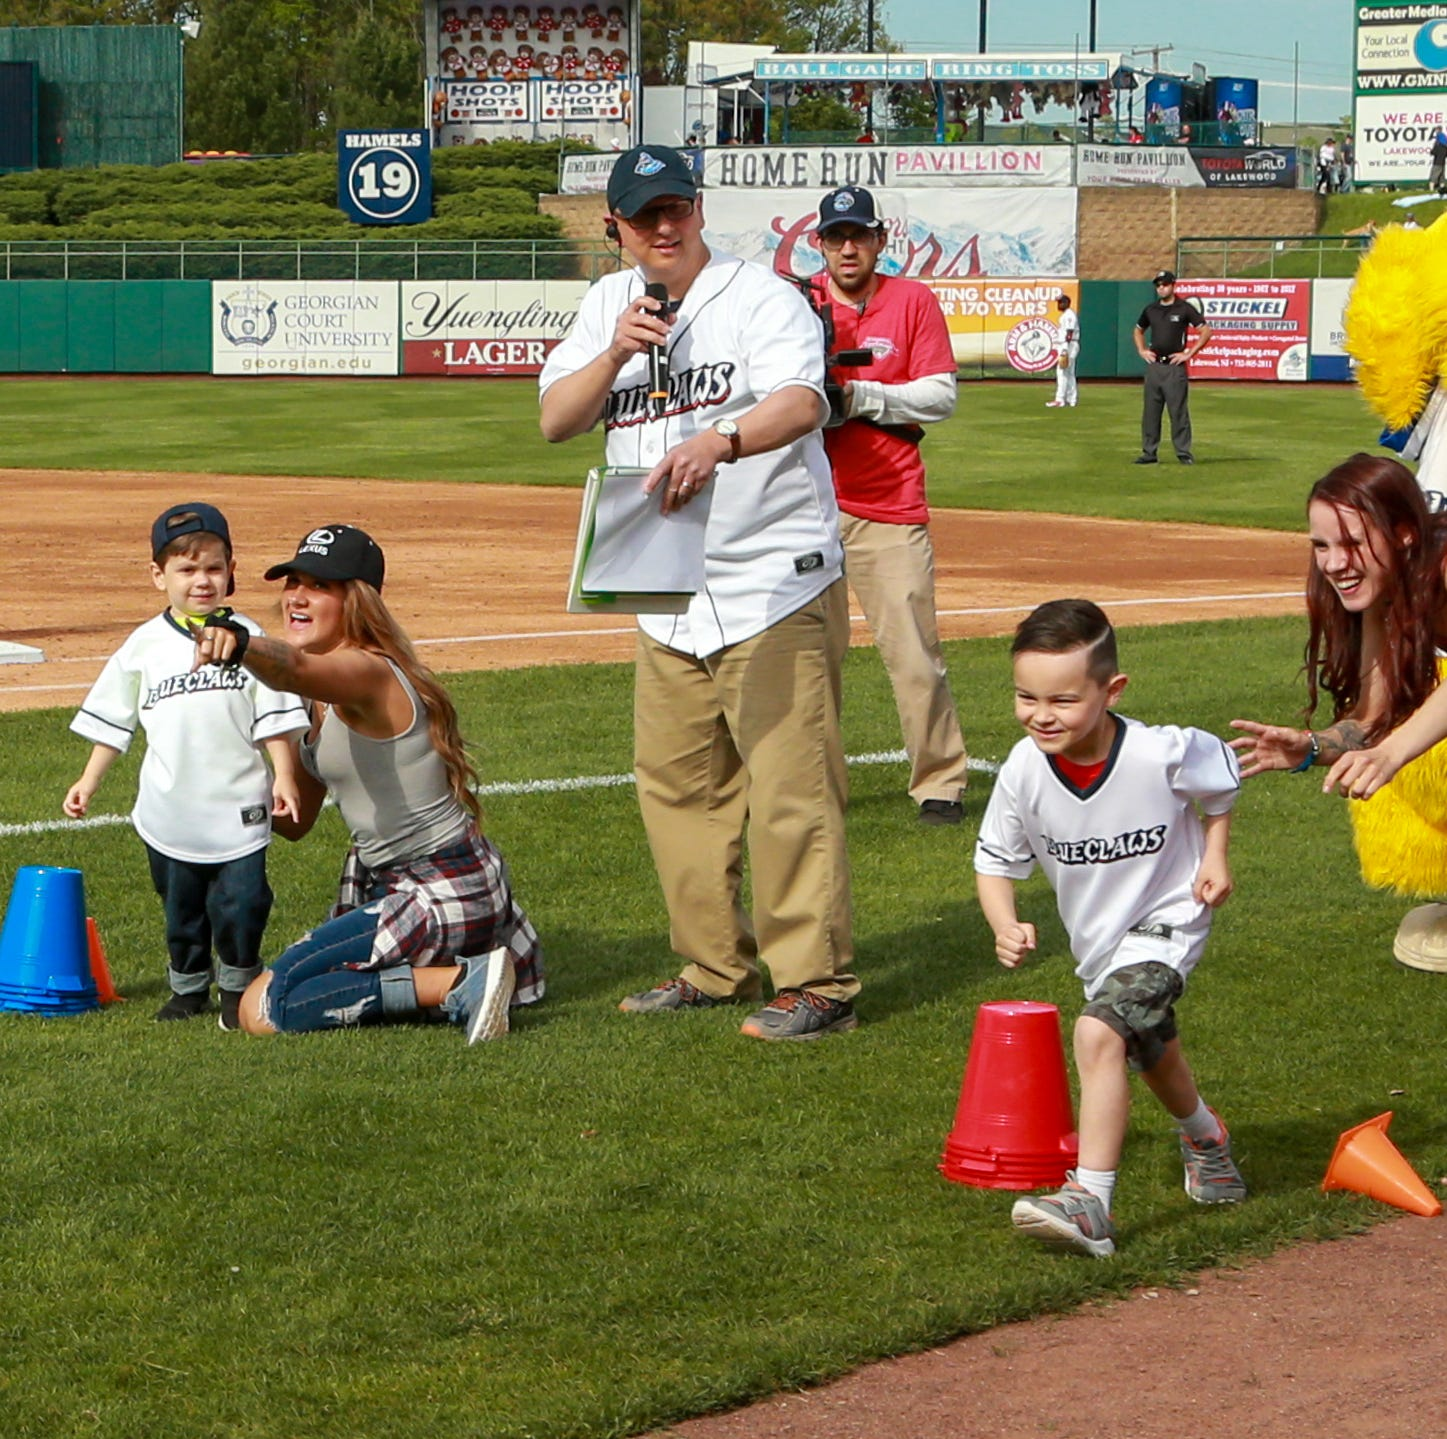 Watch NJ Marine, home from overseas, surprise his kids at baseball game